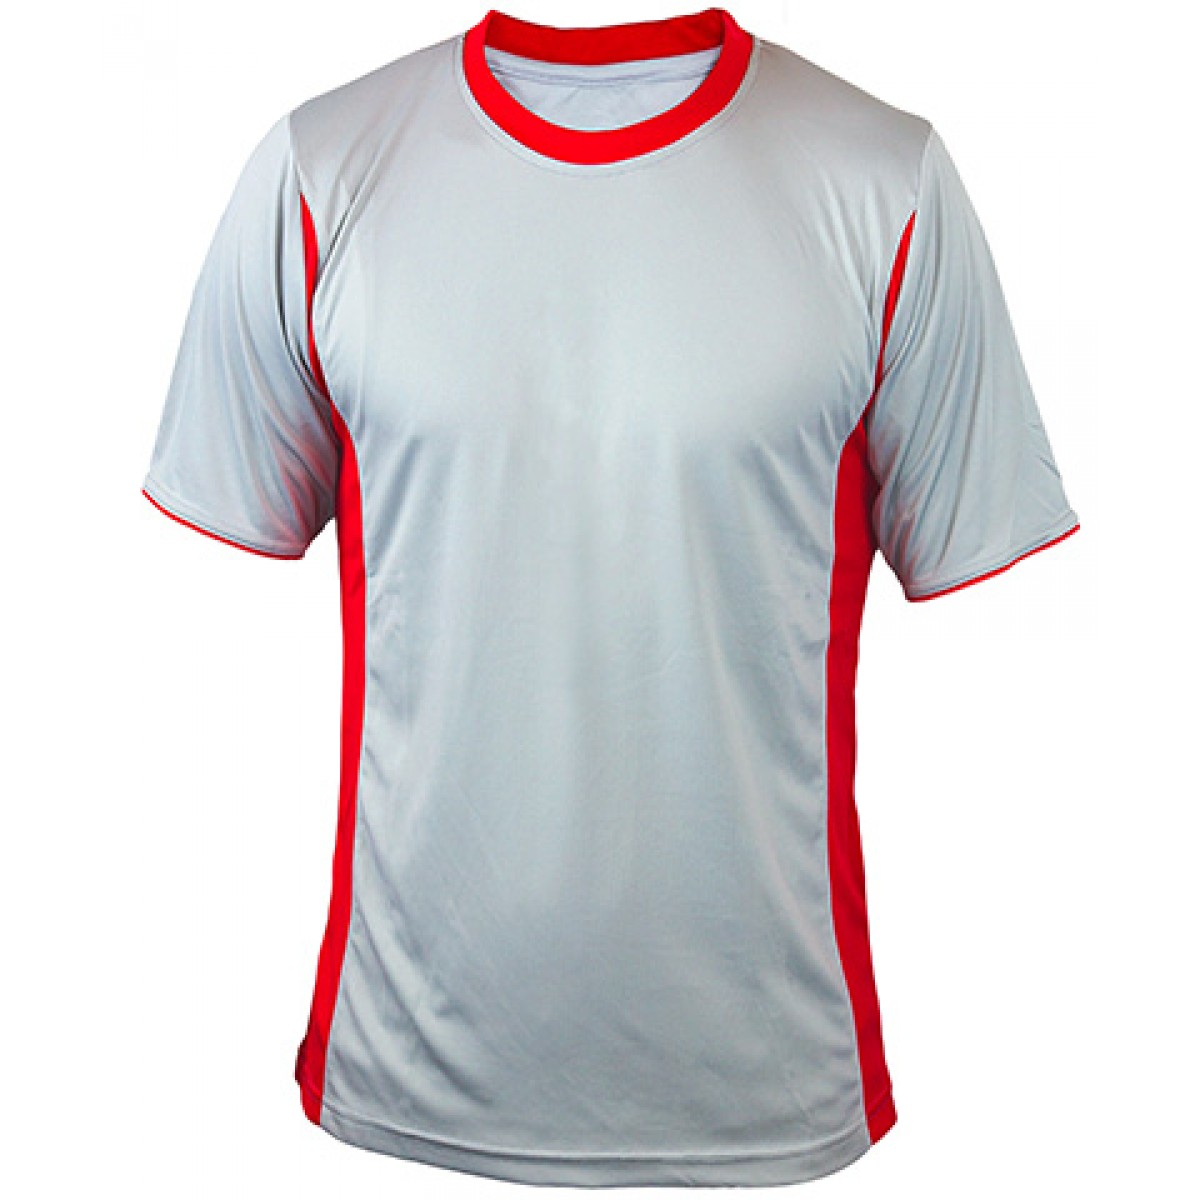 Gray Short Sleeves Performance With Red Side Insert-Gray/Red-M